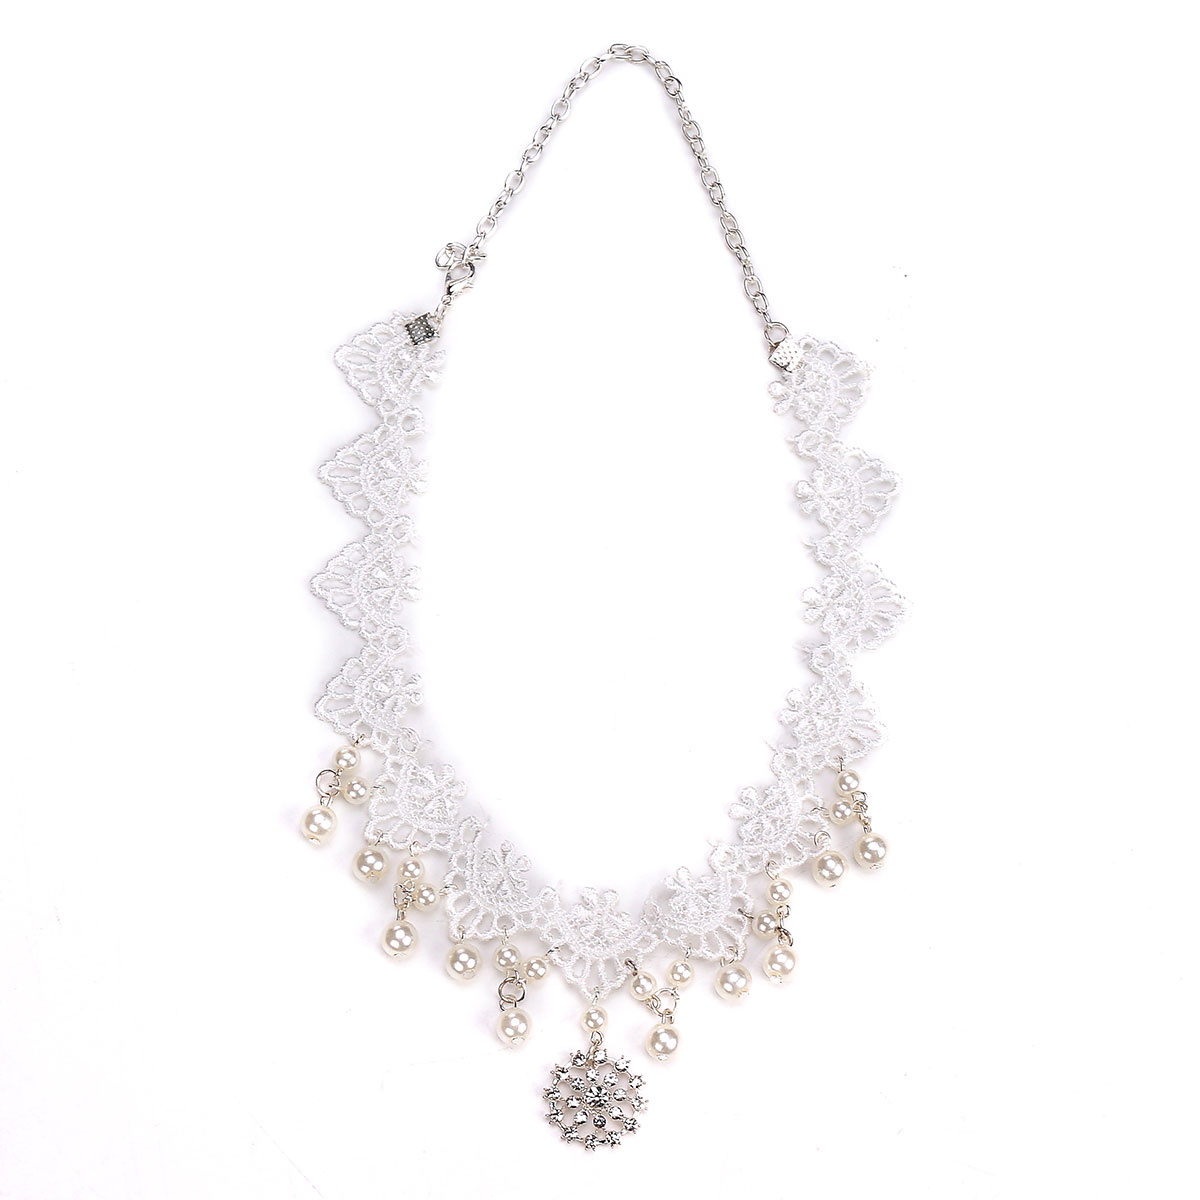 Bride Women Lace Pearl Diamond Necklace Headpiece Gothic Multifunction Wedding Accessories